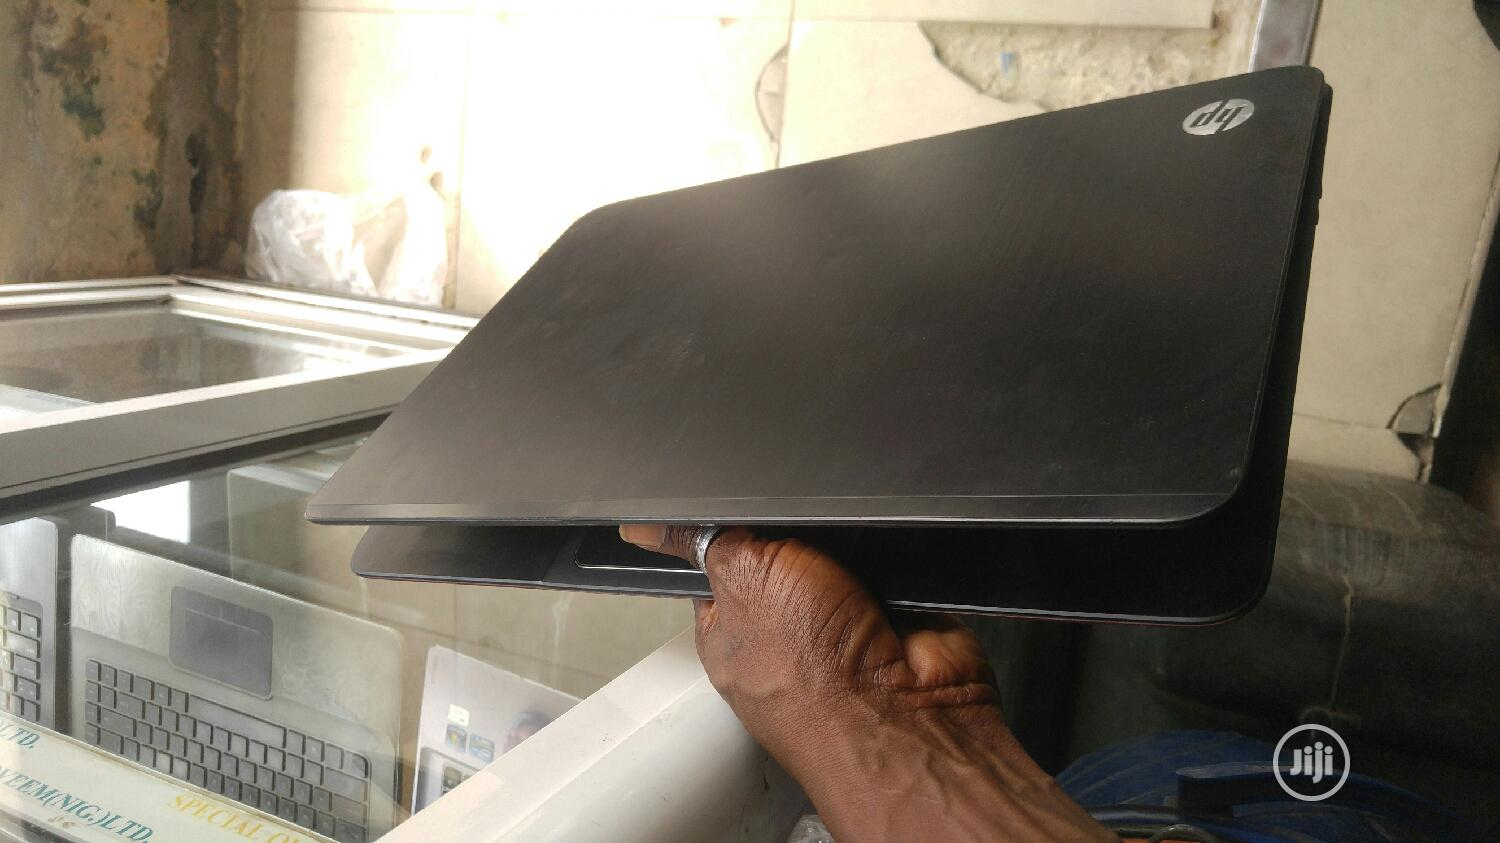 Laptop HP Envy M6 4GB Intel Core i5 HDD 500GB | Laptops & Computers for sale in Ikeja, Lagos State, Nigeria